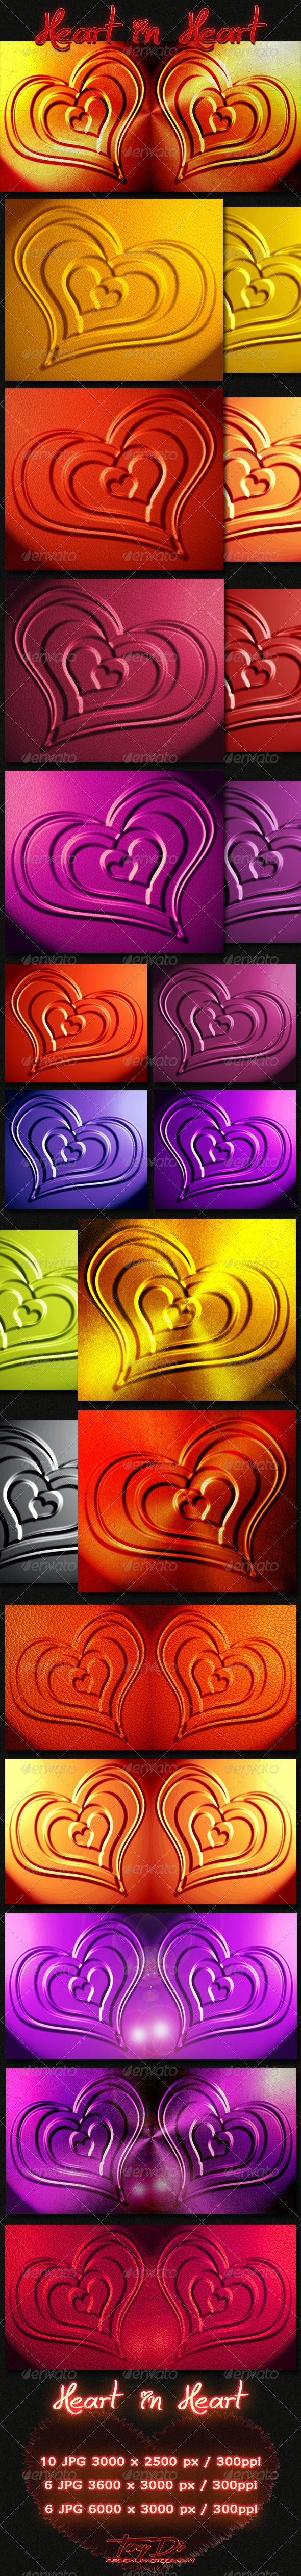 Heart in Heart 12 Backgrounds - Backgrounds Graphics